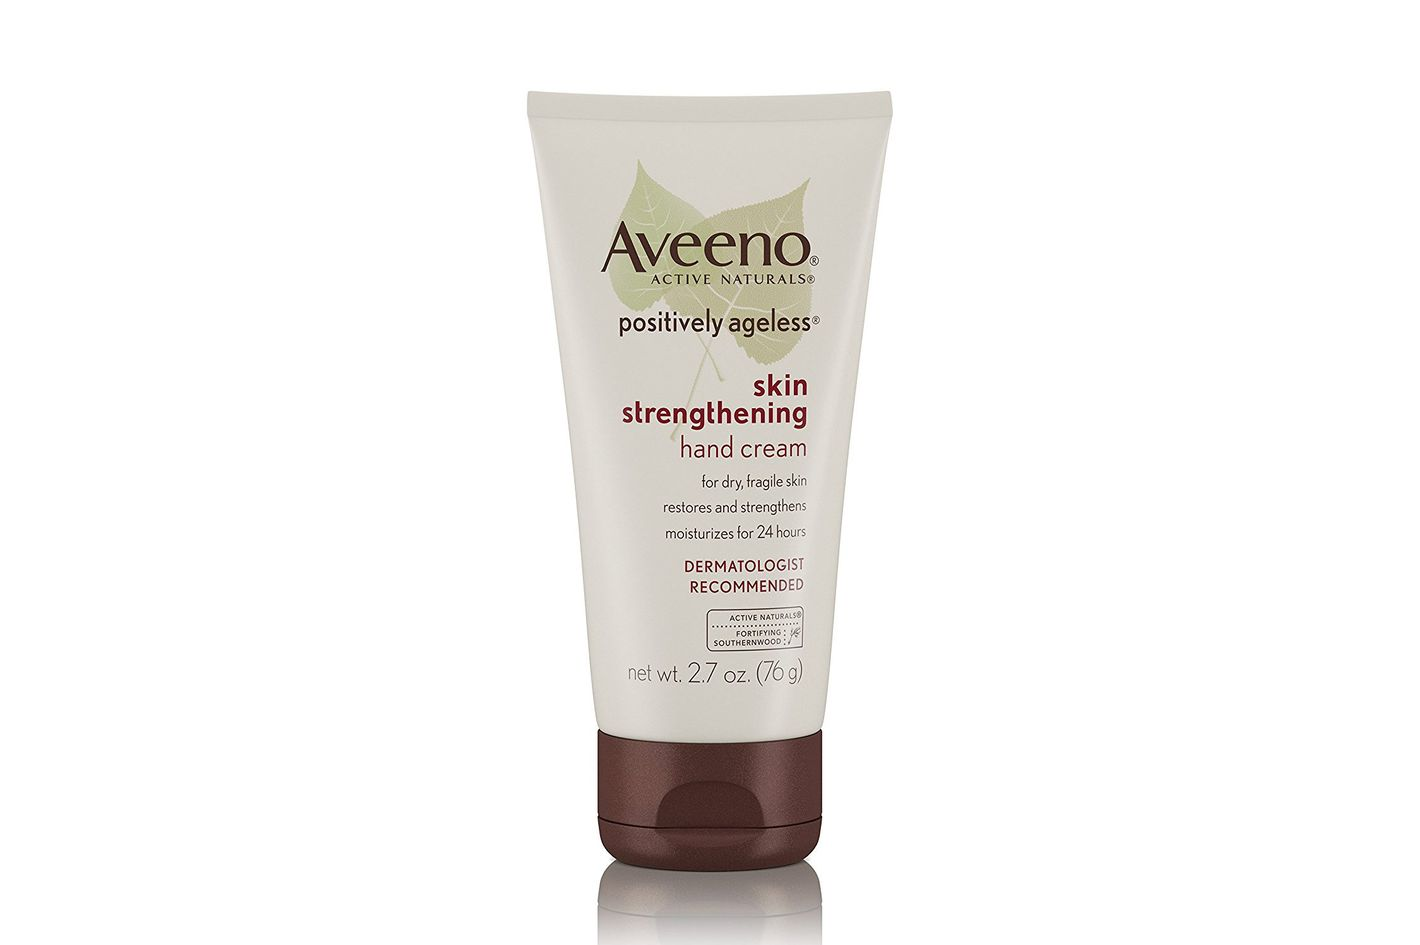 Aveeno Positively Ageless Skin Strengthening Cream